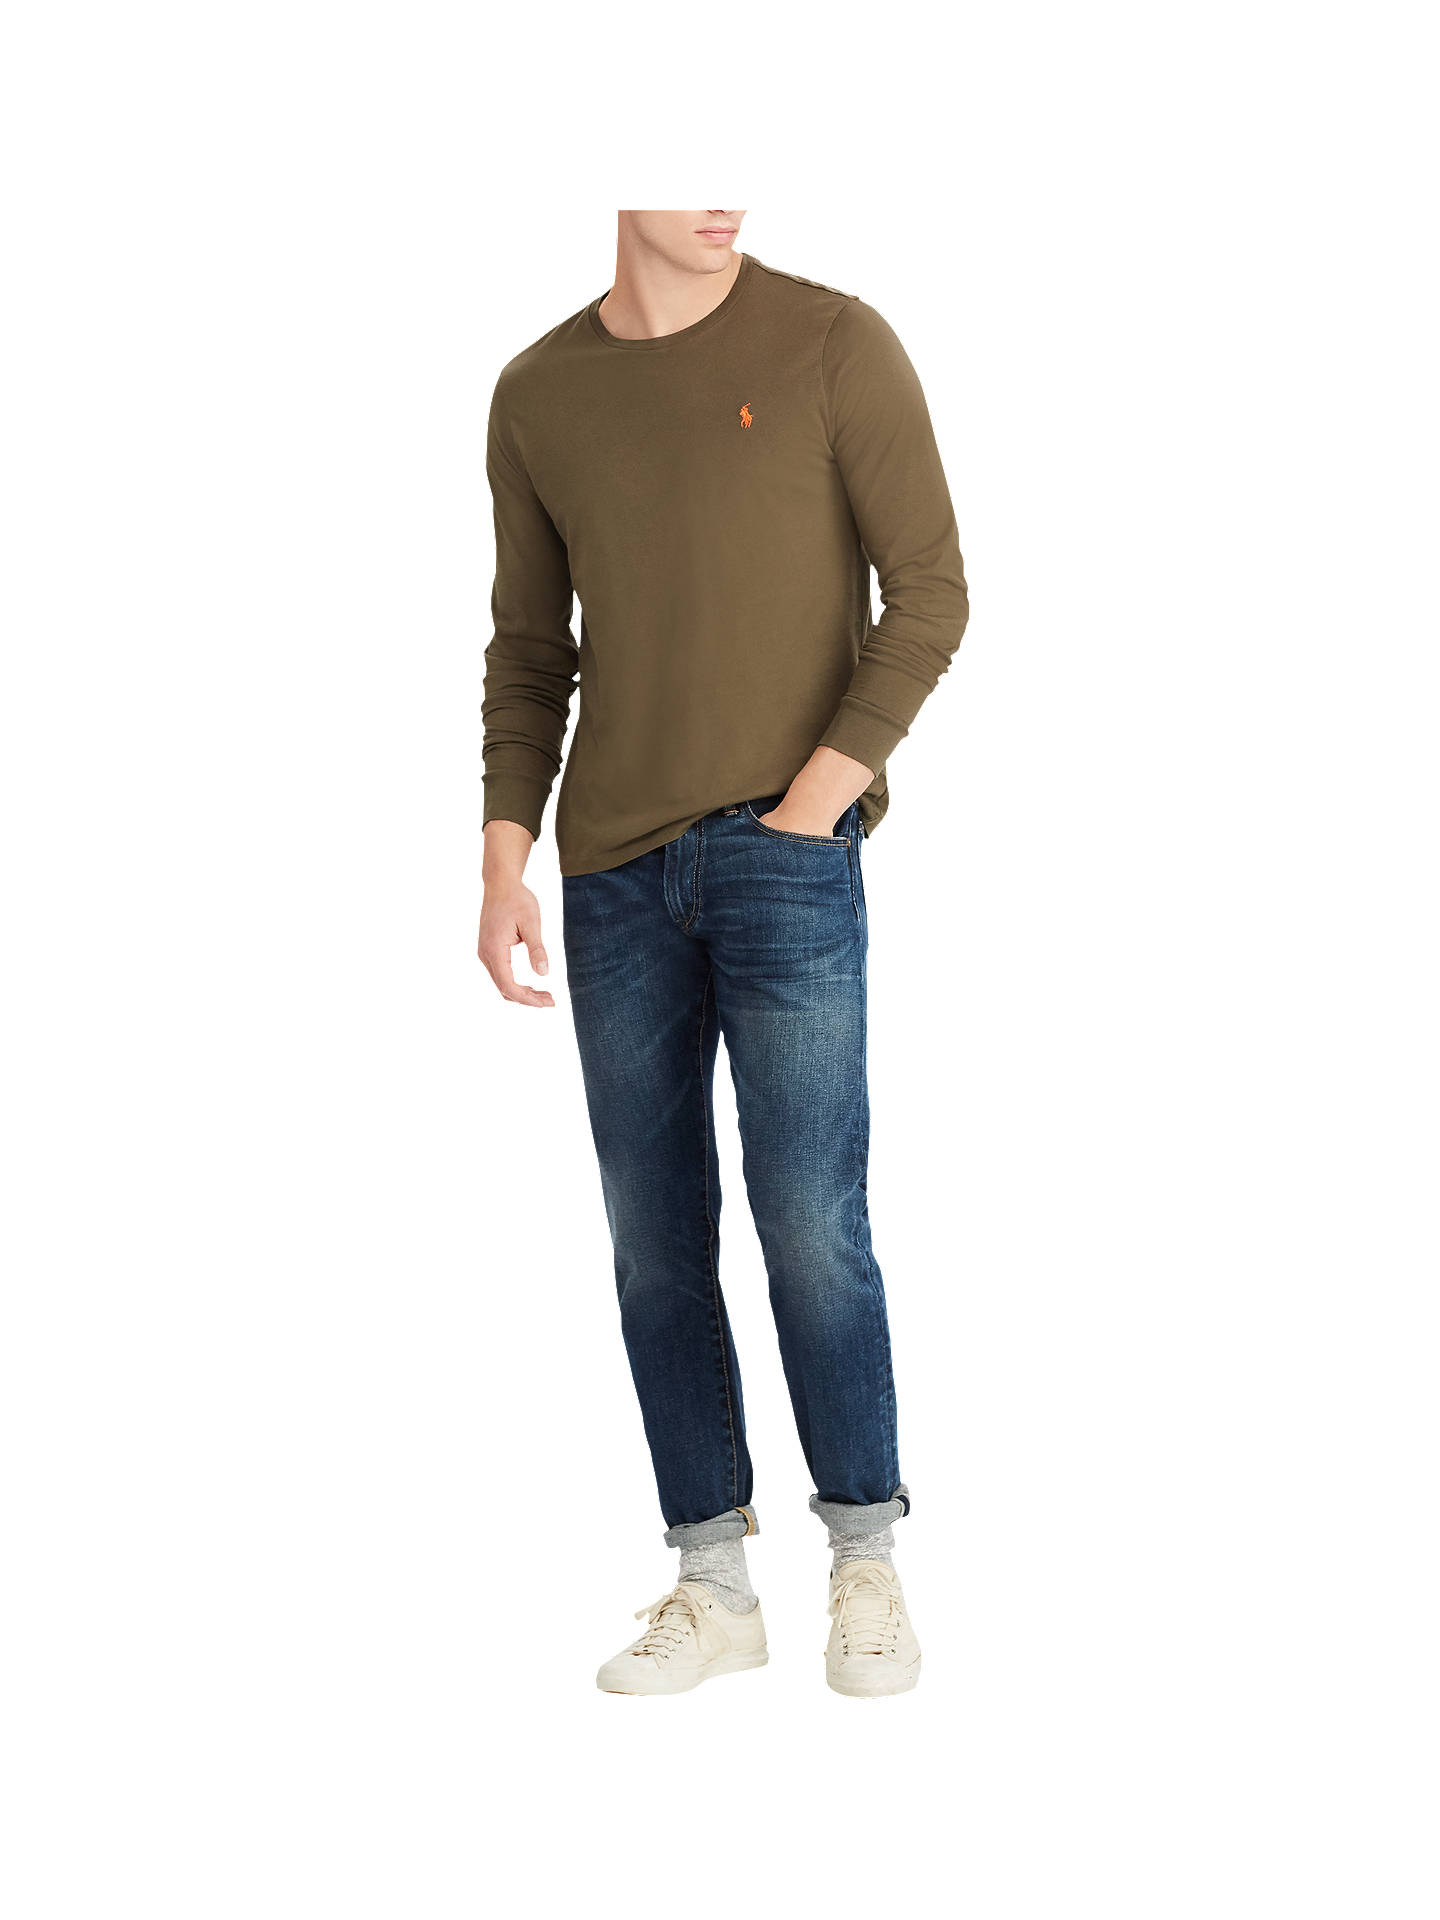 Buy Polo Ralph Lauren Long Sleeve T-Shirt, Expedition Olive, M Online at johnlewis.com